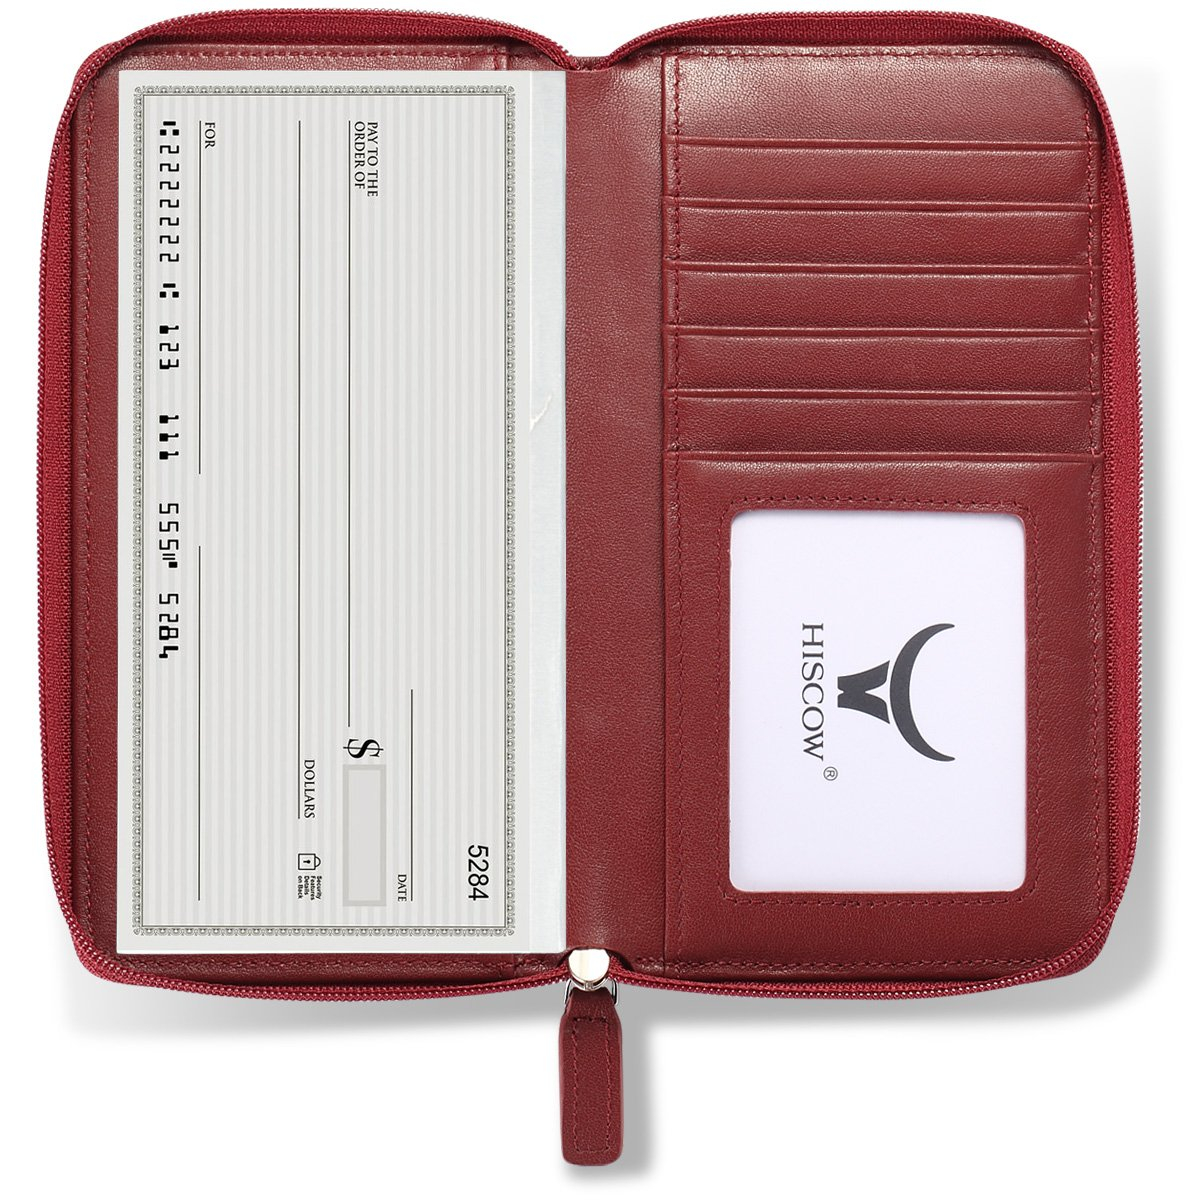 HISCOW Zippered Checkbook Cover & Card Holder with Divider - Italian Calfskin (Wine Red)